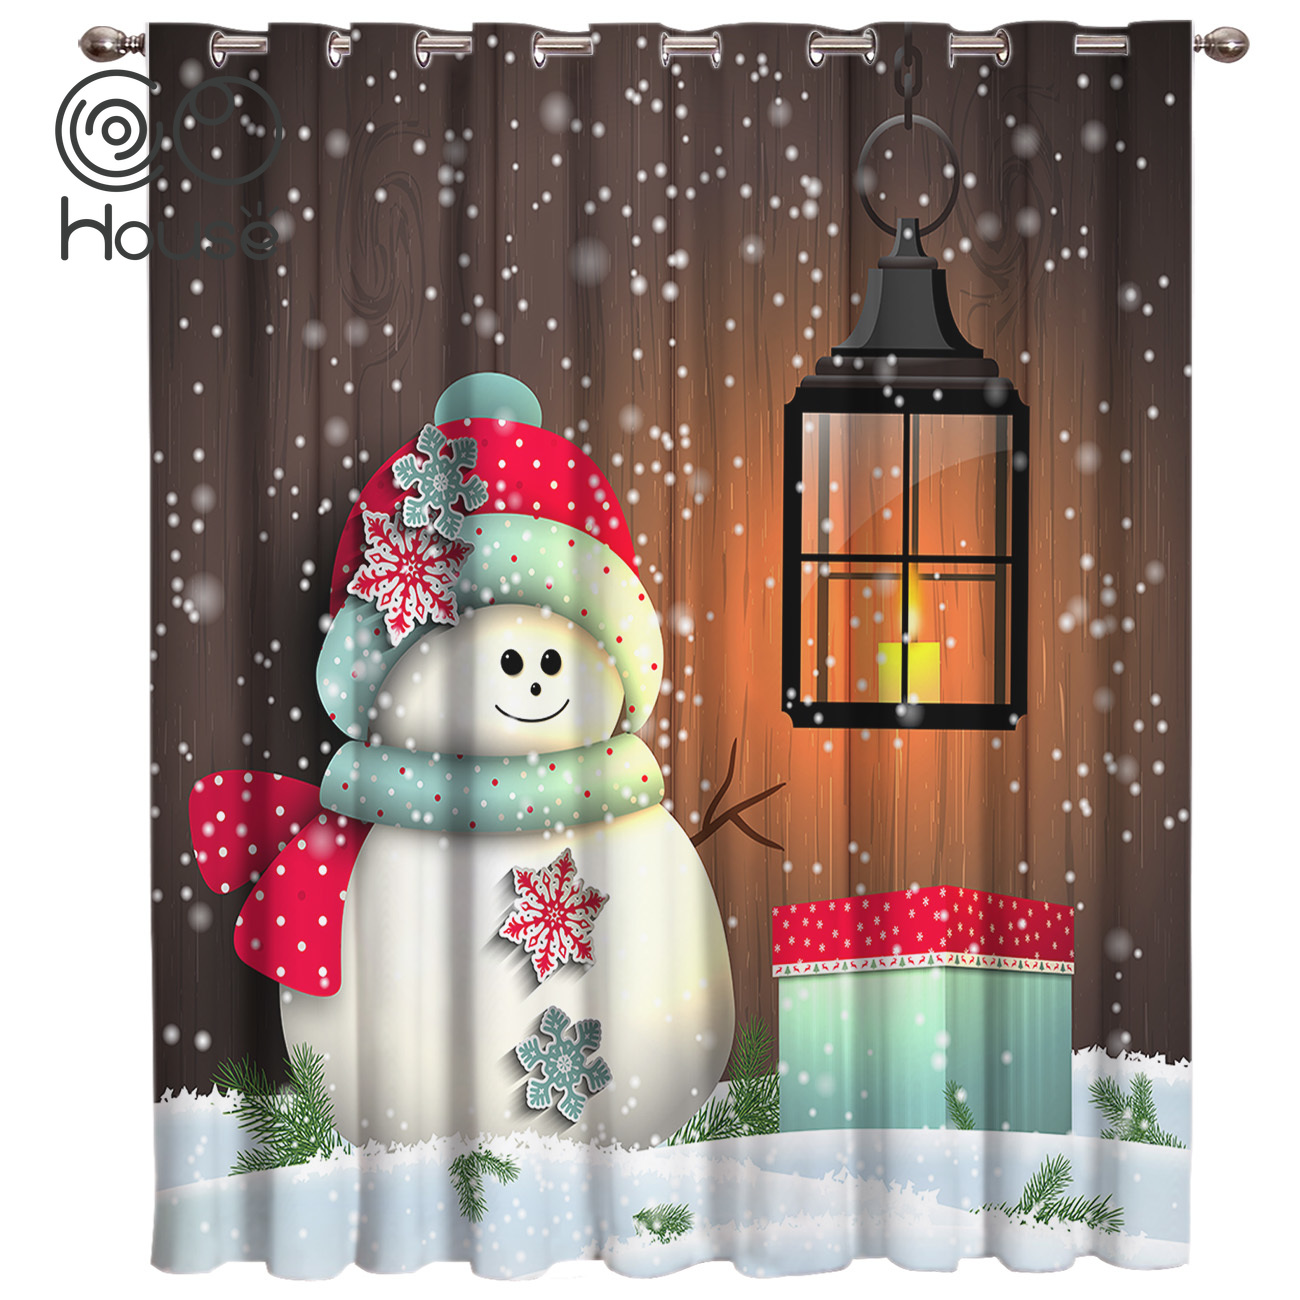 Christmas Snowman Curtains /& Valances